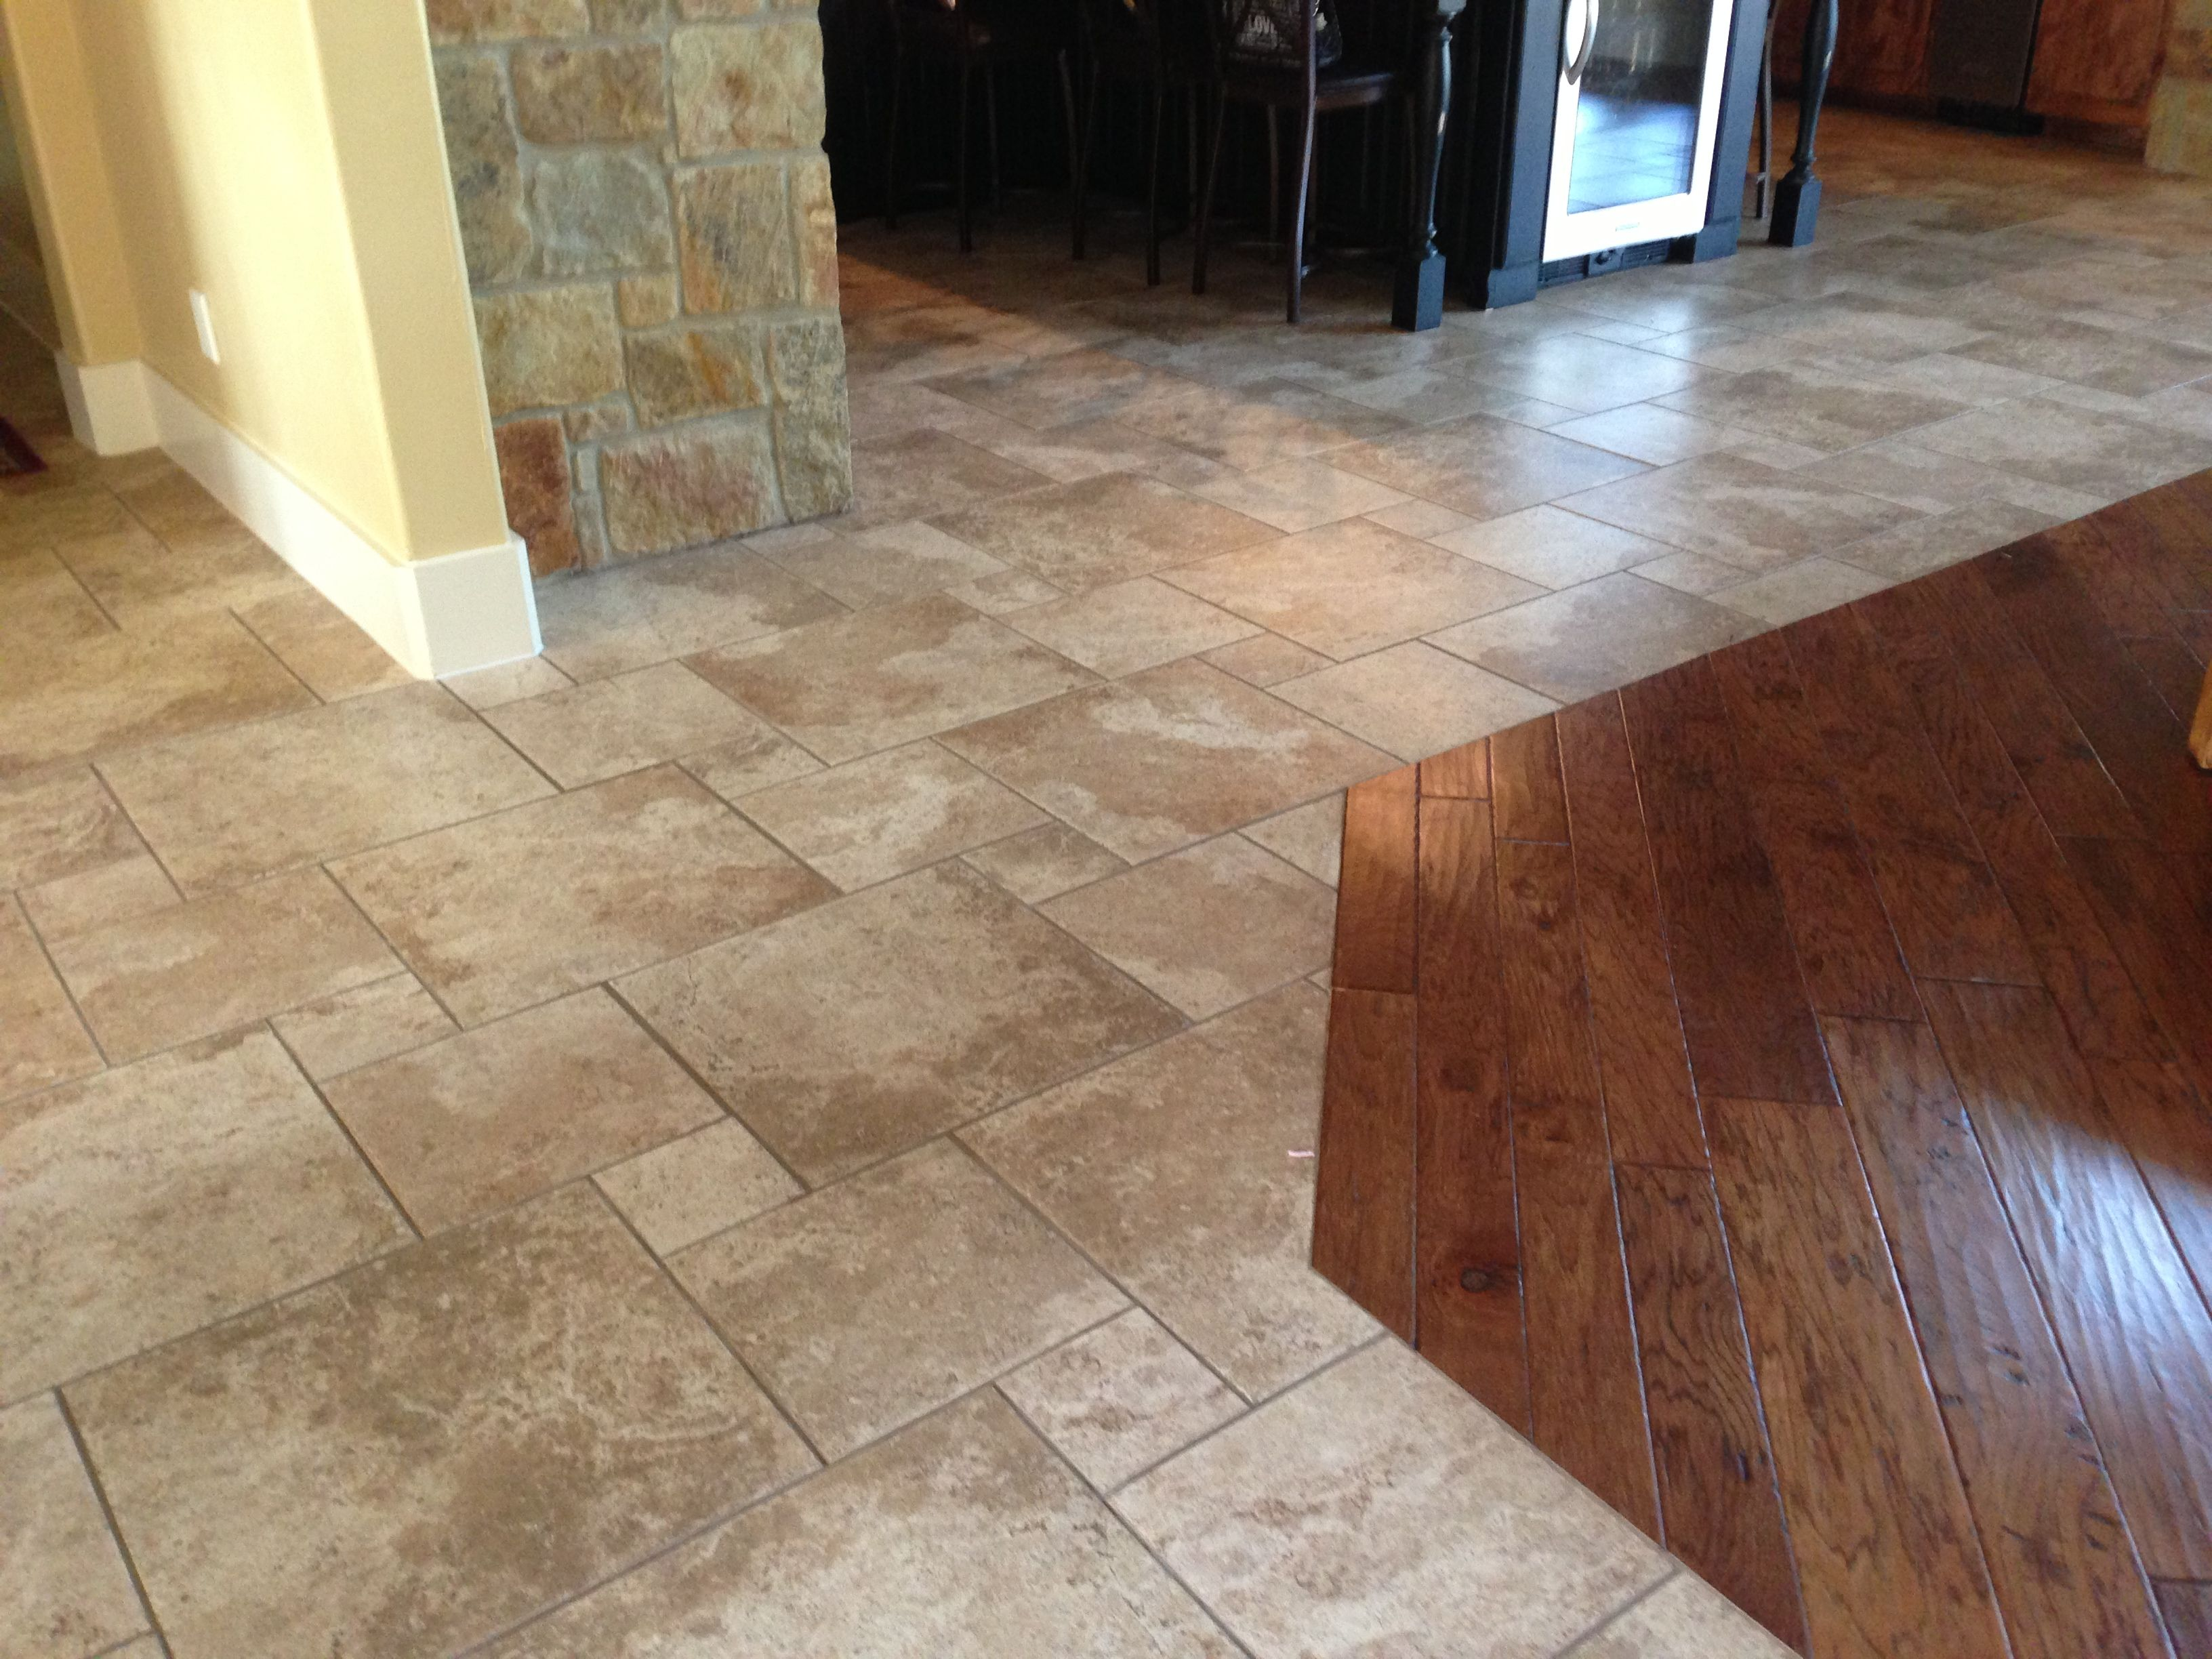 Infinity floor no transition from tile to wood new for Tile and hardwood floor